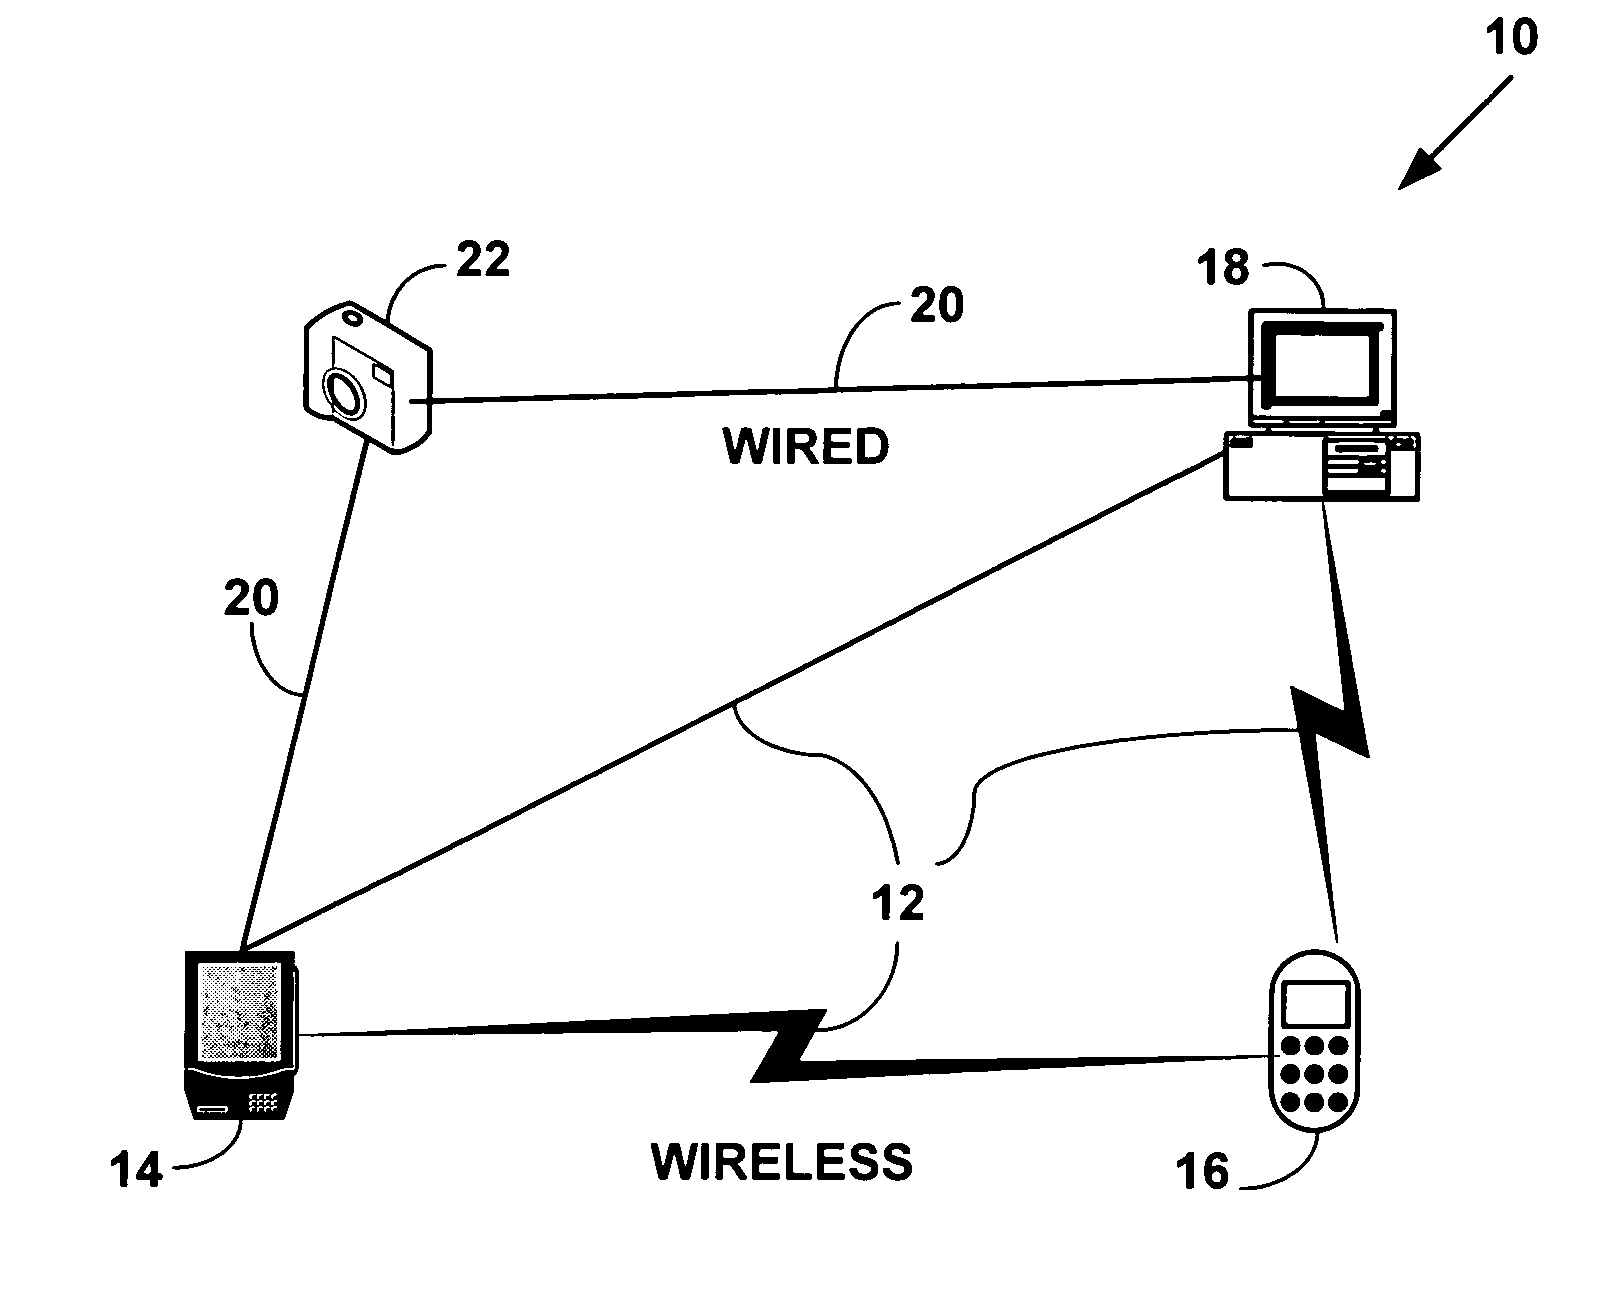 patent us7586888 - method and system for mesh network embedded devices